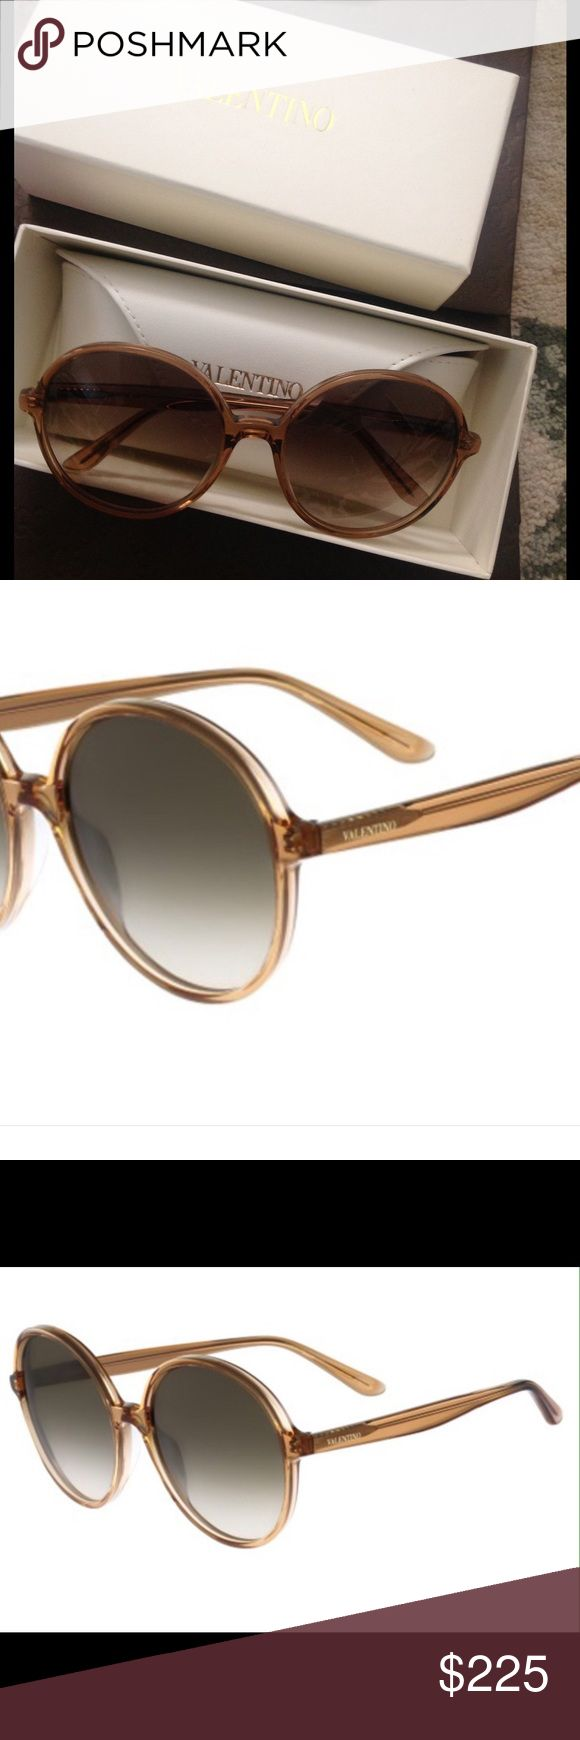 NWT Oversized Jackie O sunglasses by Valentino What better than owning a piece created by the grand maestro himself? These gorgeous sunnies were created for the iconic Jackie Kennedy and became her signature look. Since the oversized style is back these are are very chic for any fashionista These are new with tags !!! Valentino Accessories Sunglasses